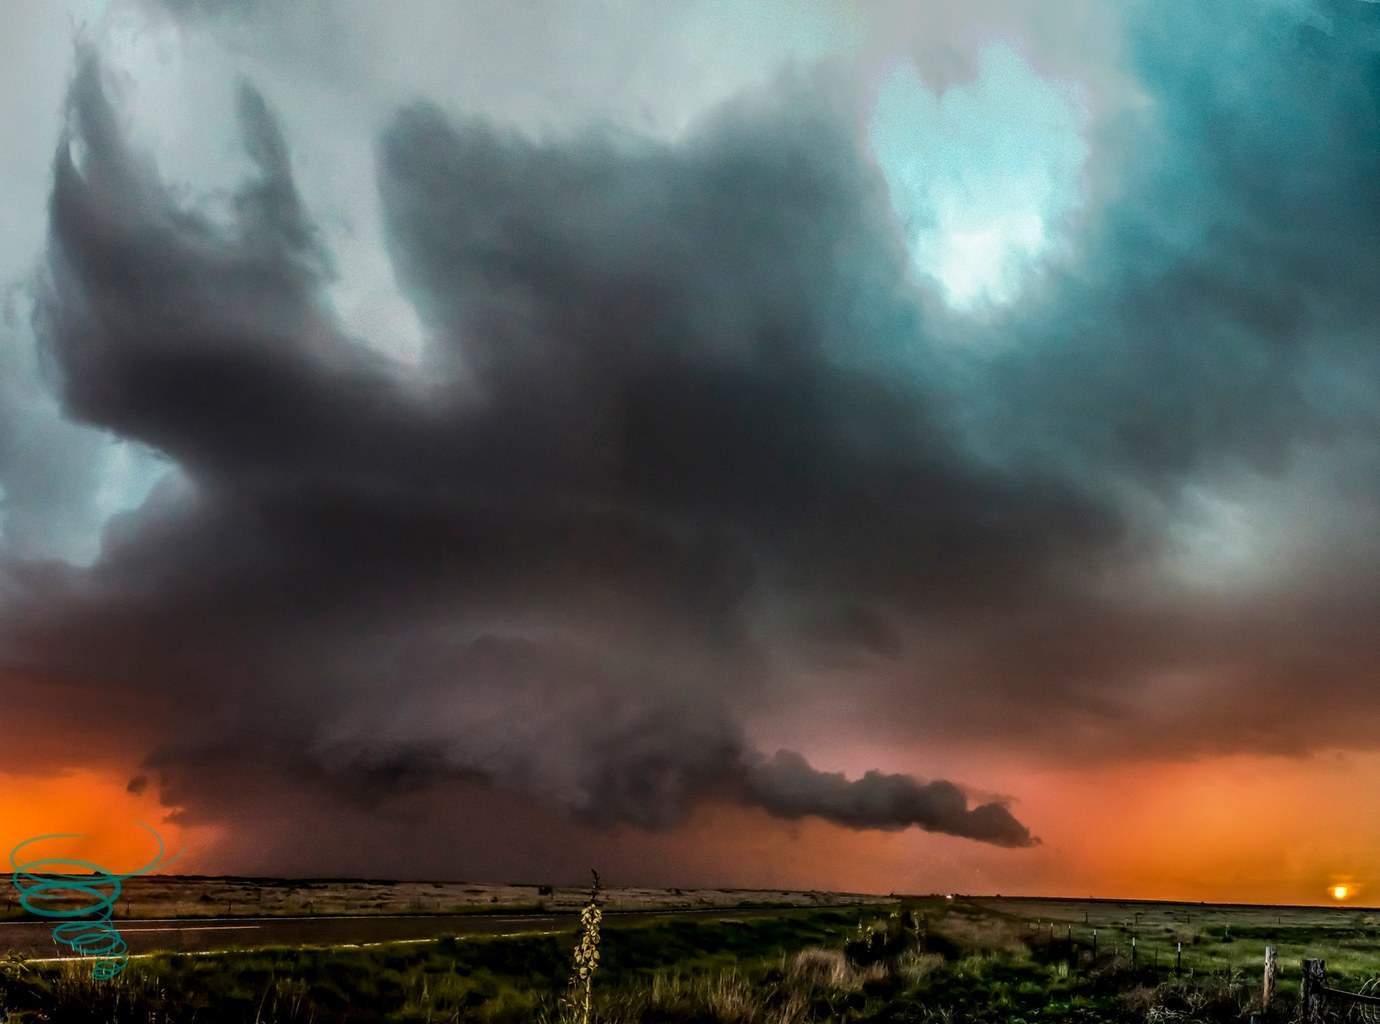 This supercell from Bluitt, New Mexico on May 29, 2015 was the storm that kept on giving. After producing a picturesque tornado, it, in tandem with the approaching sunset, produced a wonderful display of color. The addition of sporadic lightning added even more color to the view.